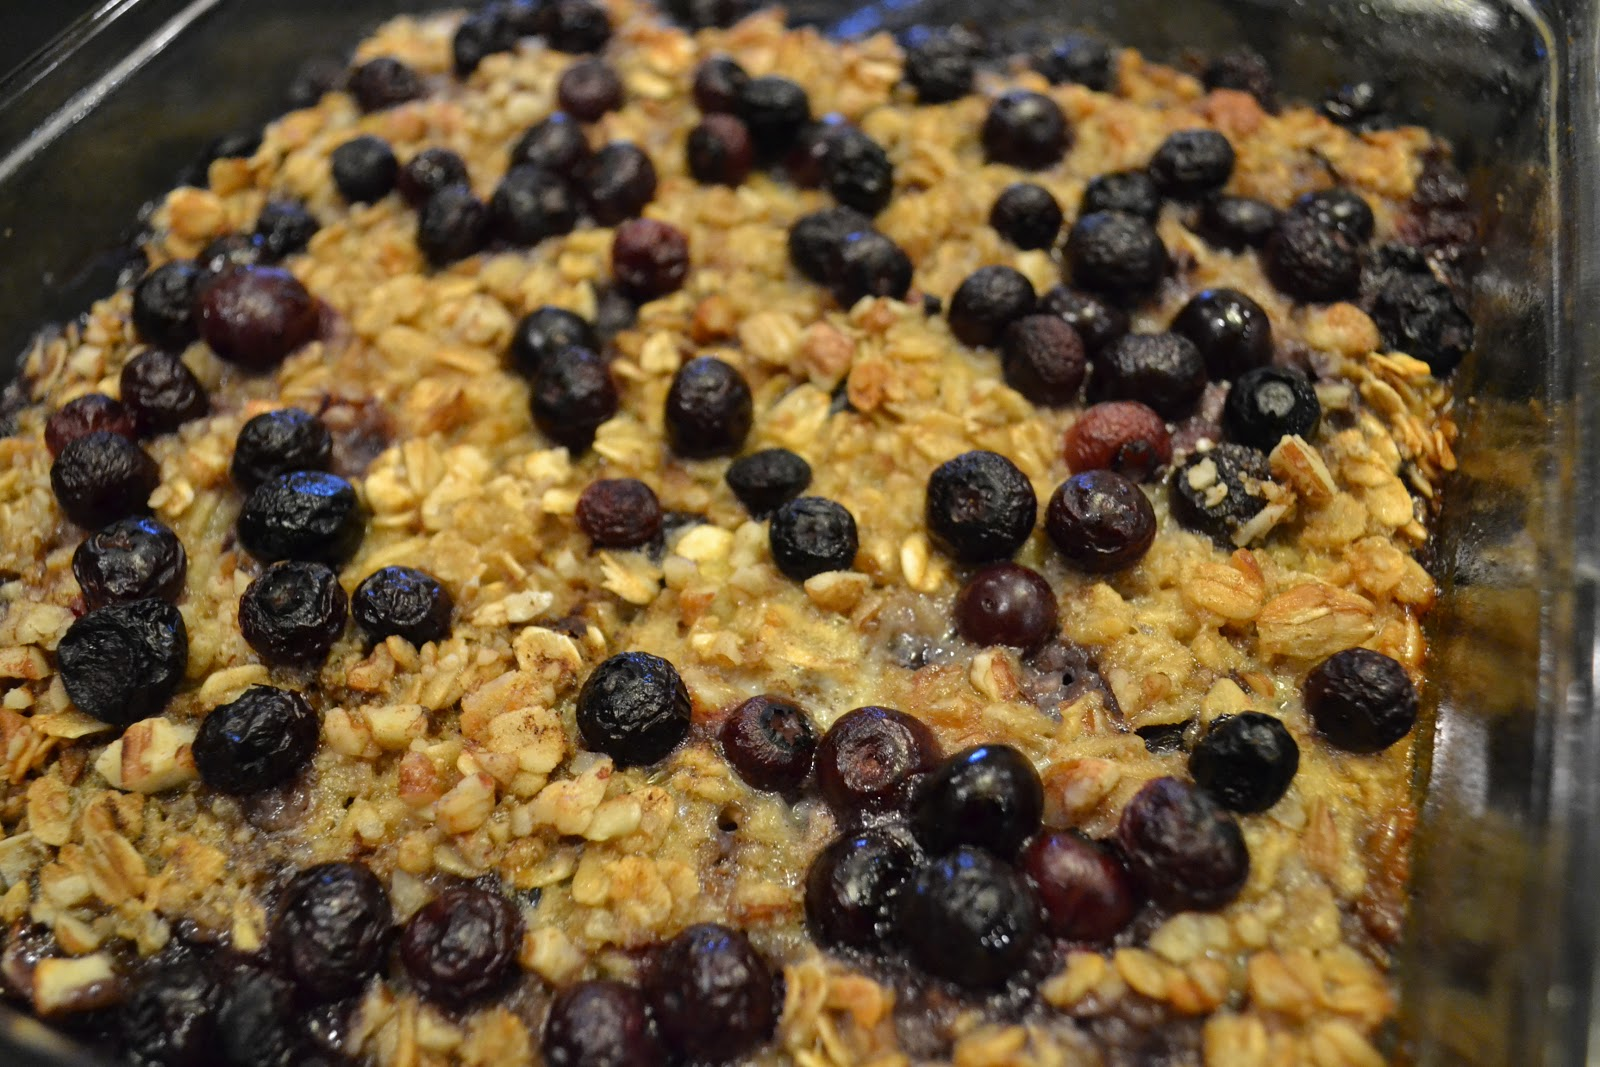 Southern Accents: Baked Blueberry & Banana Oatmeal (Vegan)